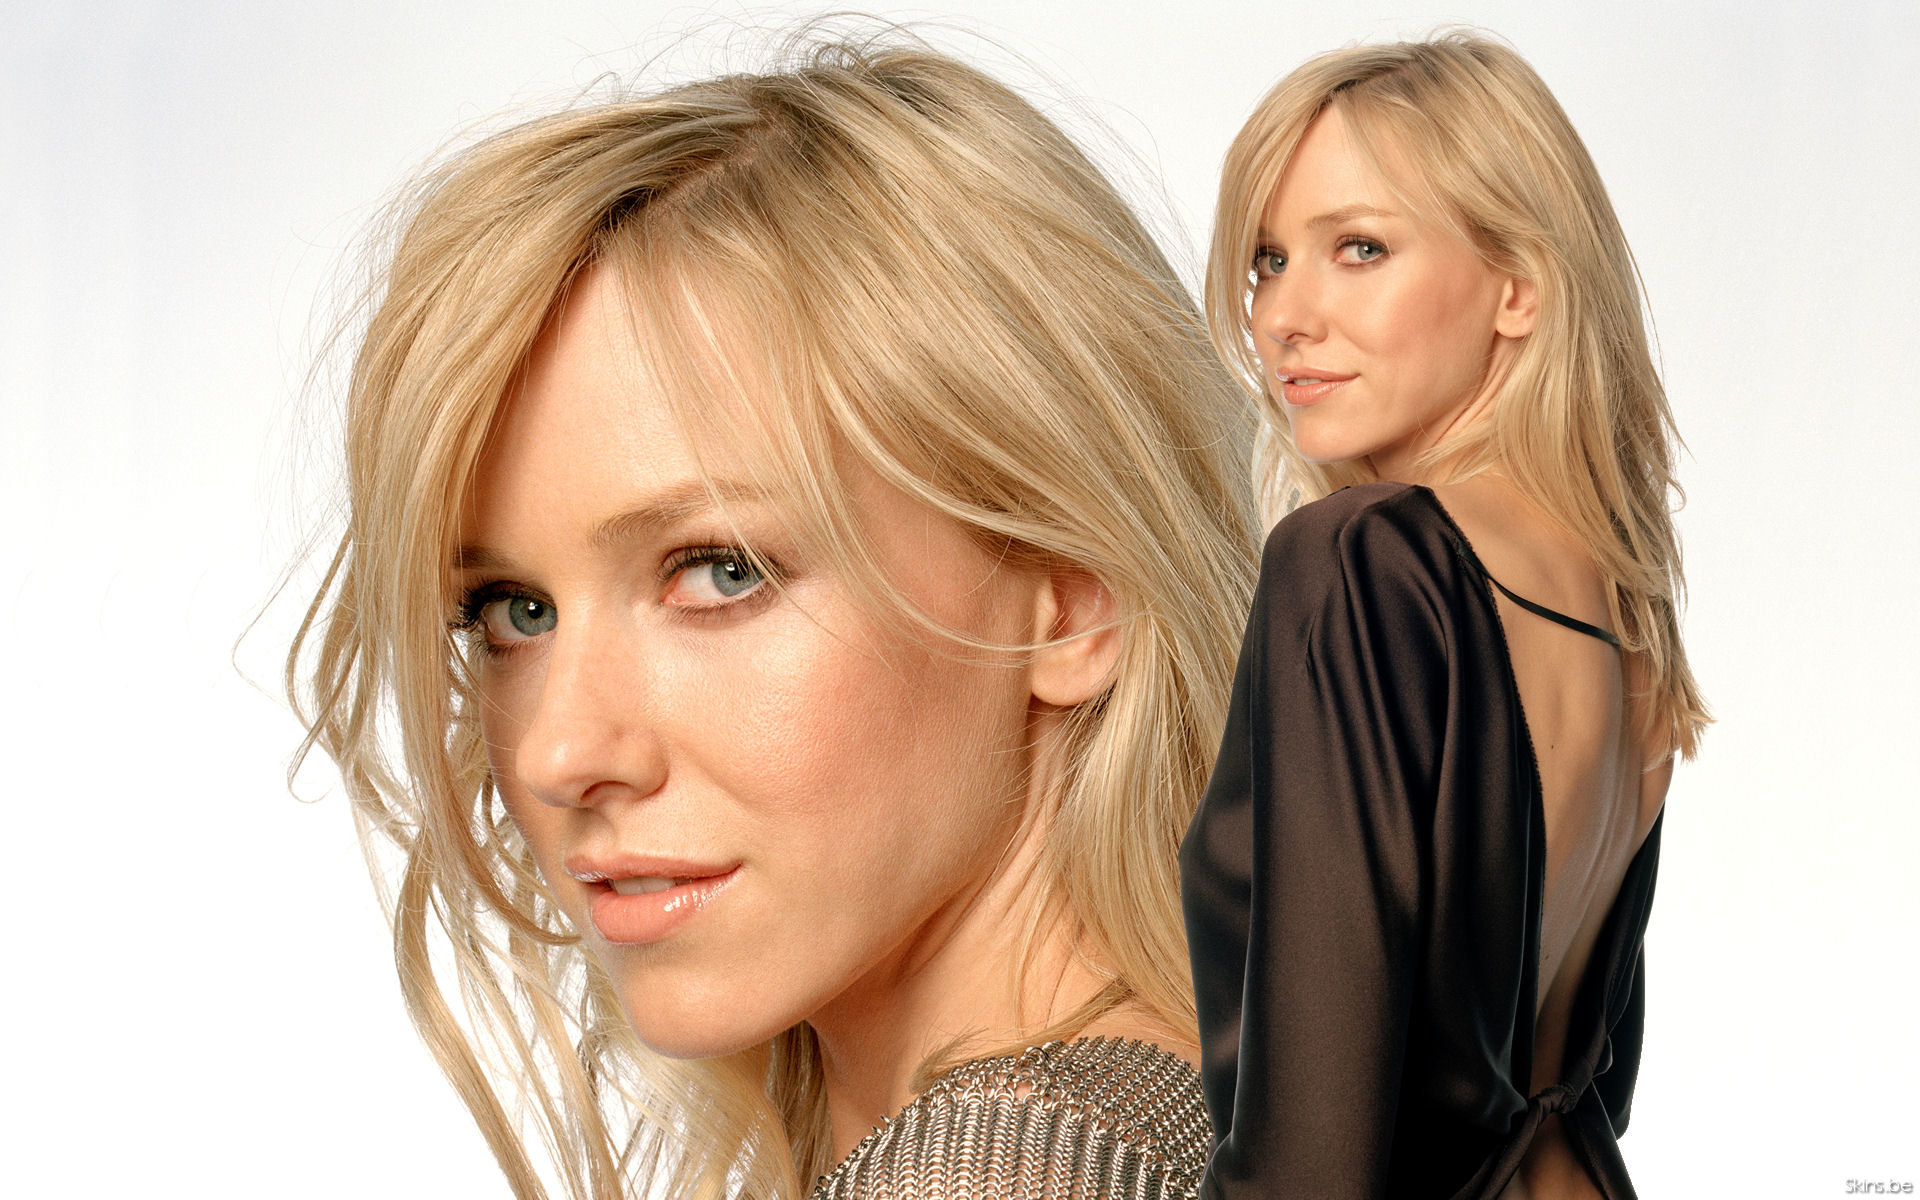 Download hd 1920x1200 Naomi Watts PC background ID:9424 for free